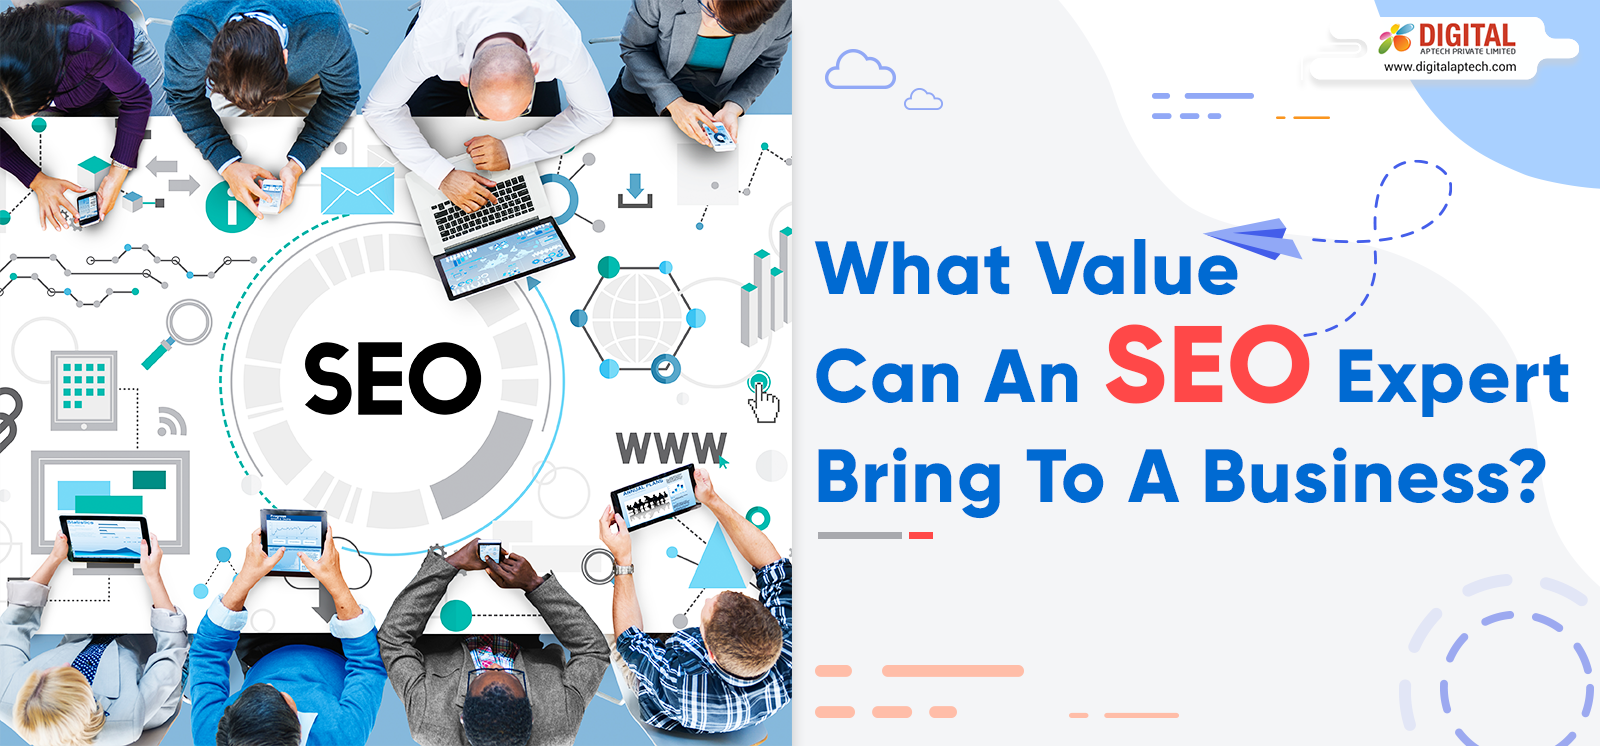 What Value Can An SEO Expert Bring To A Business?